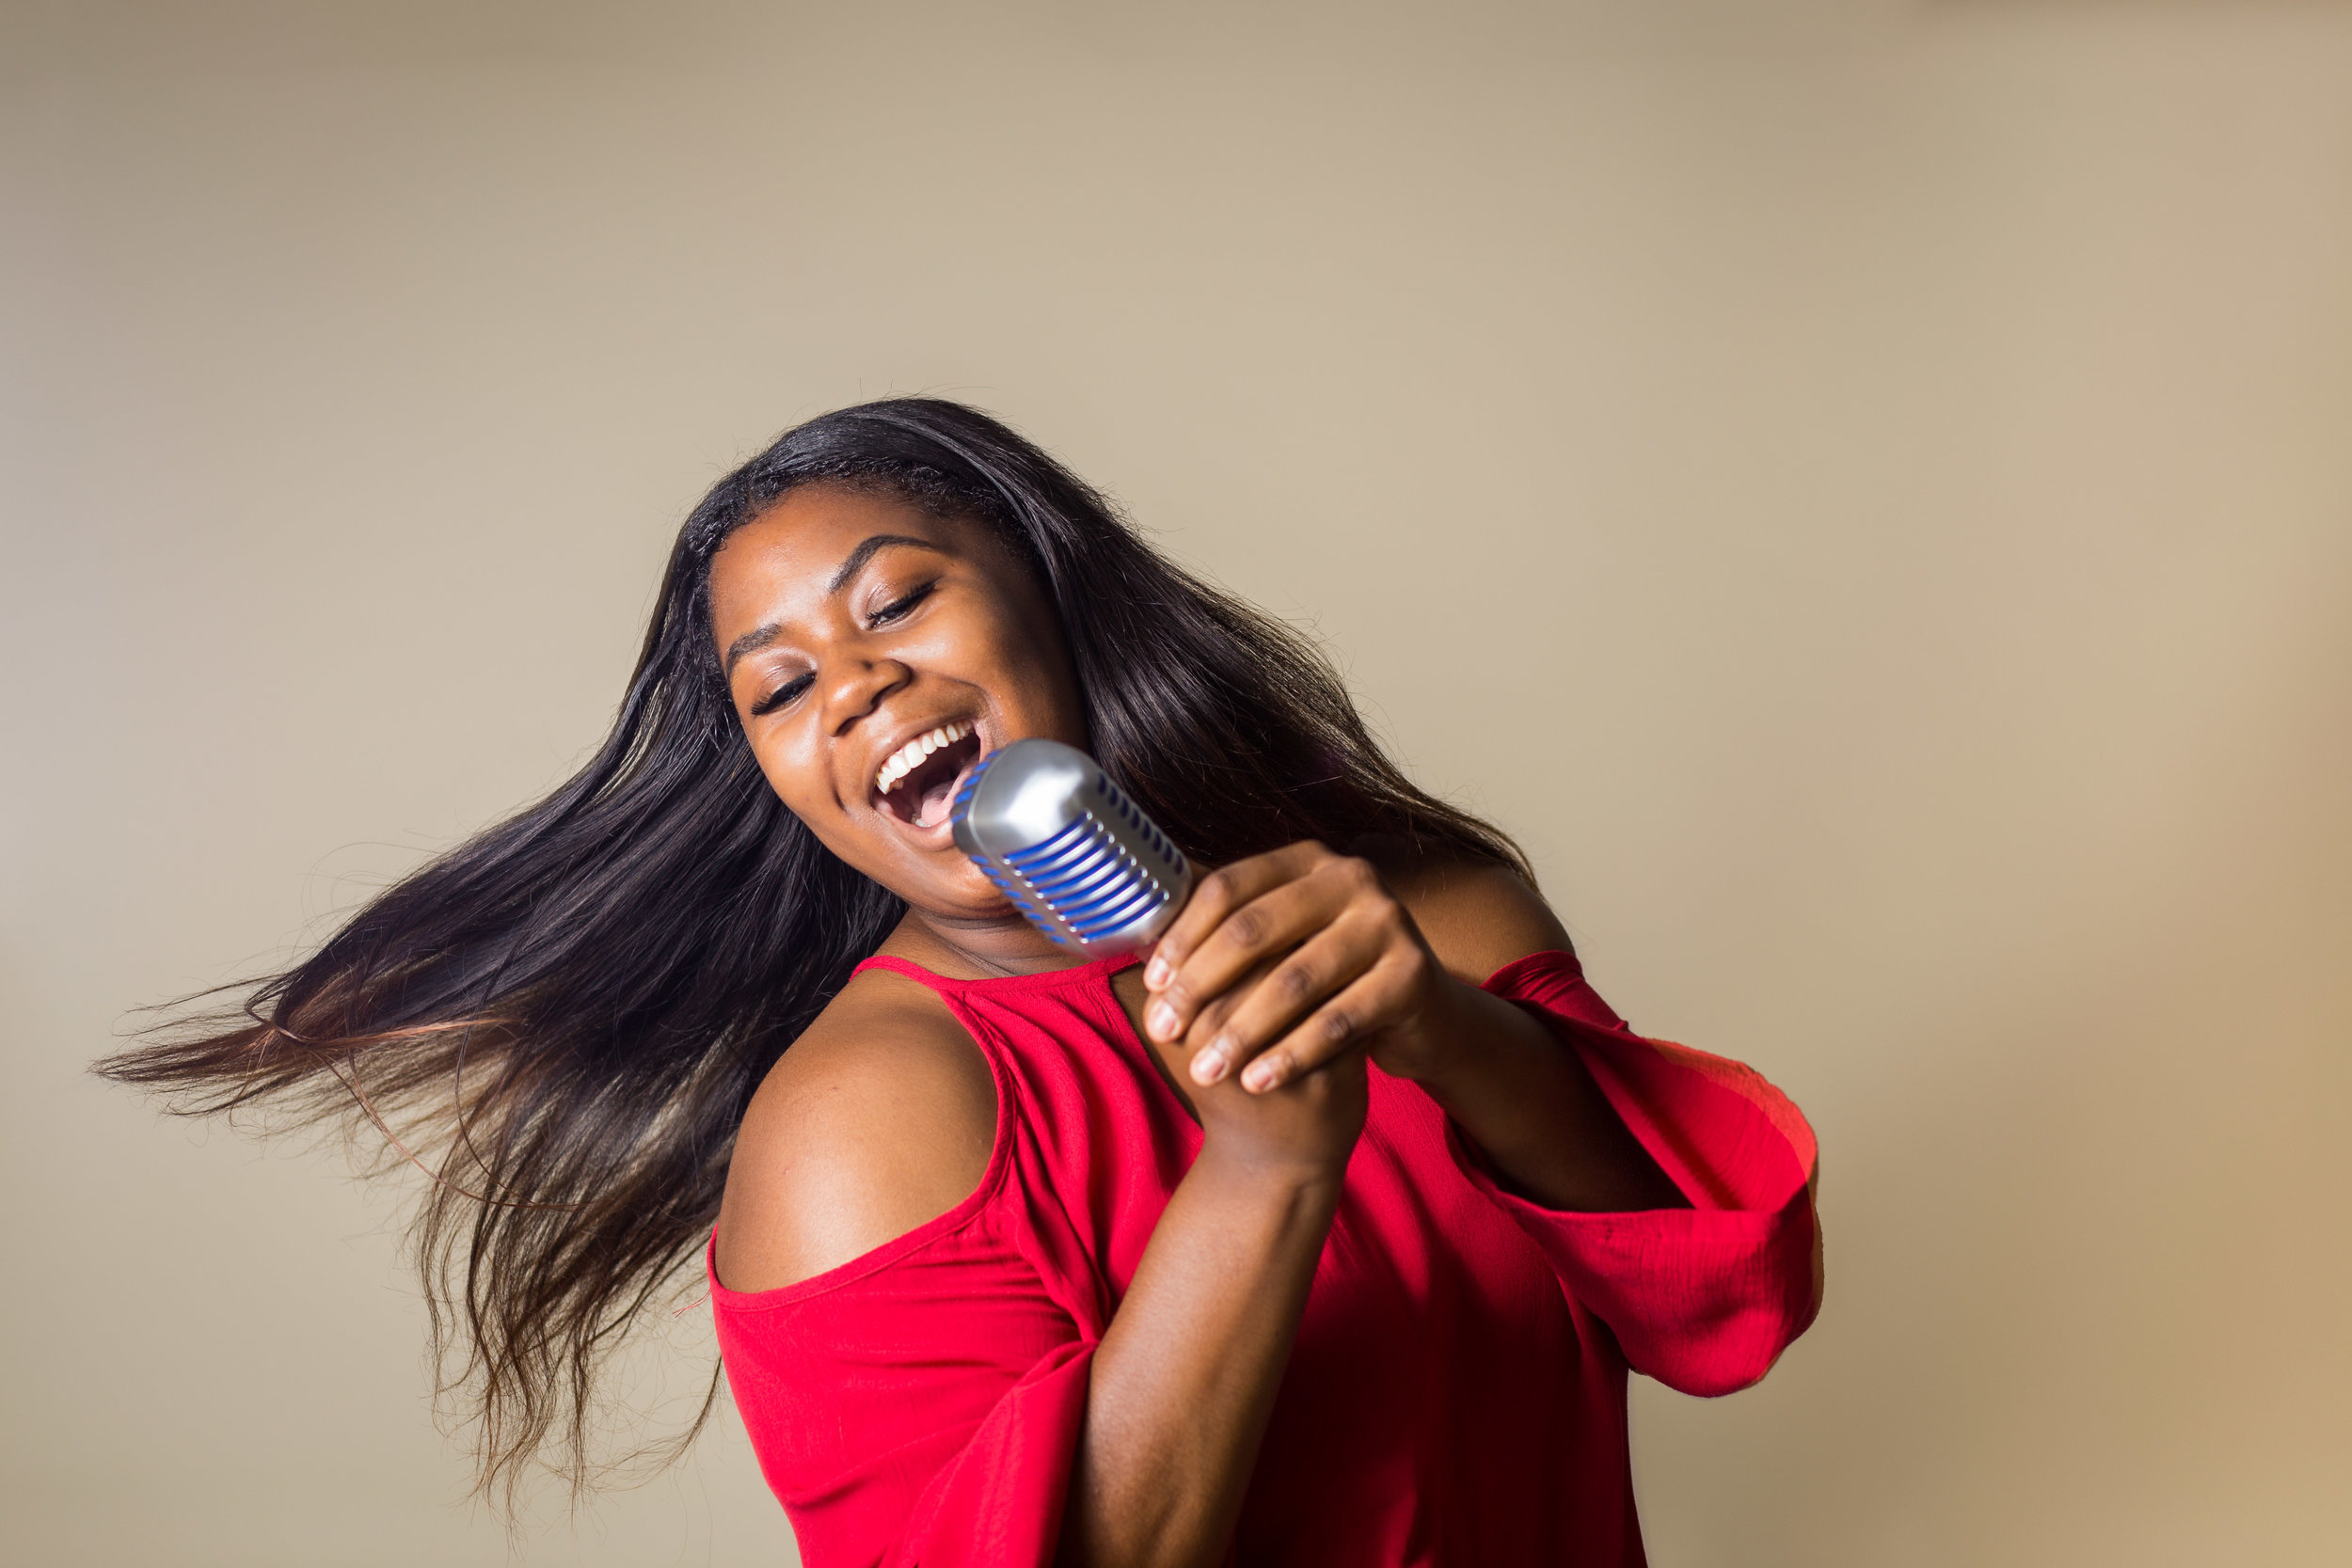 senior portrait of a girl singing into a microphone